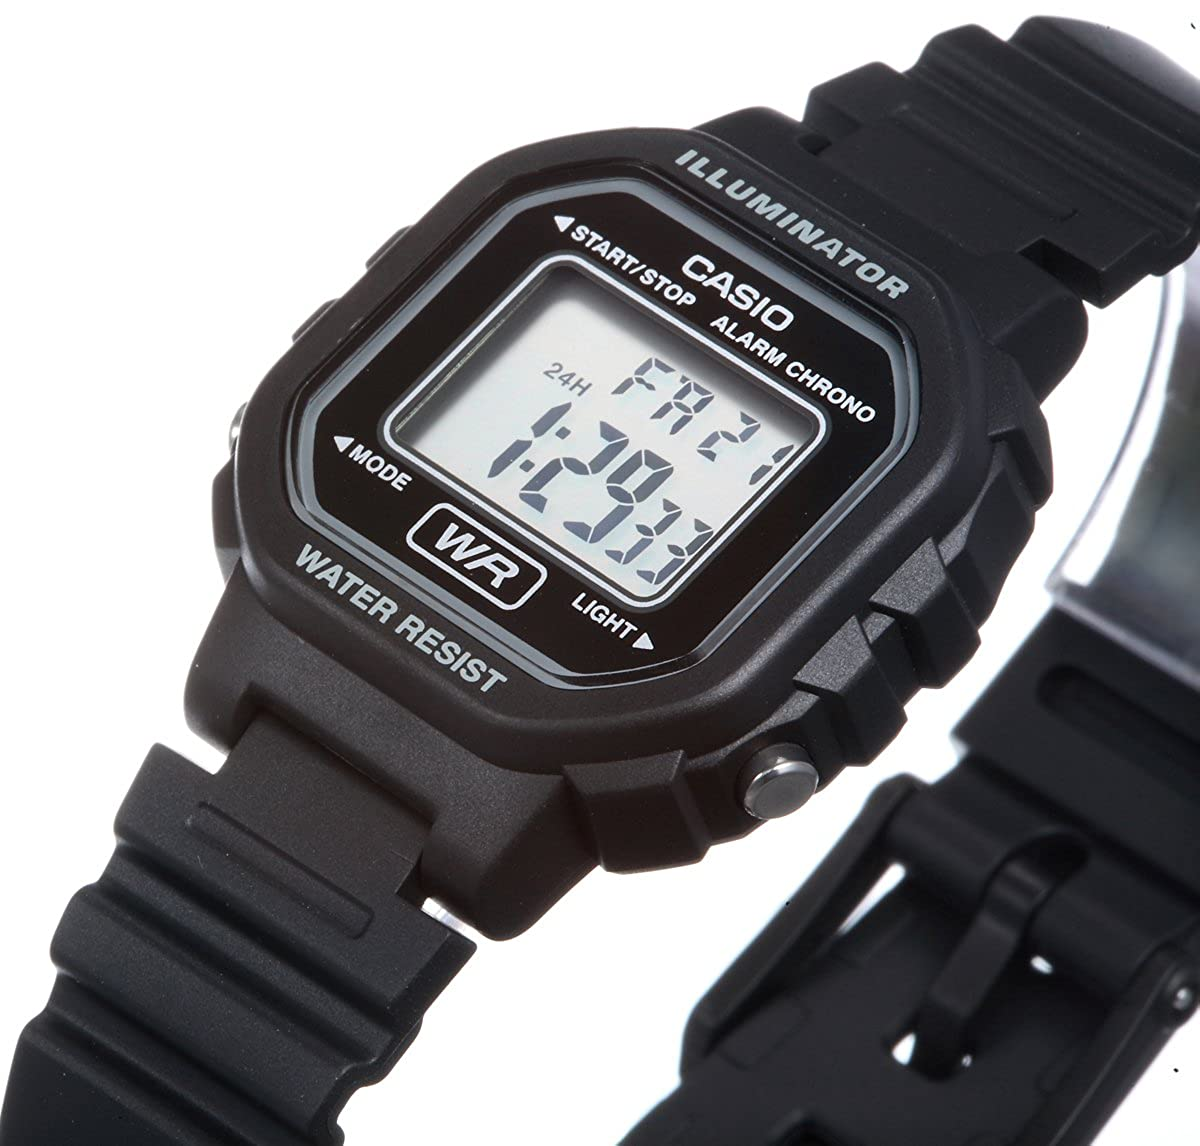 Casio Womens Classic La20wh 1a Resin Quartz Watch With Ae 1000w Manamp039s Waterproof Sports Electronic Digital Dial Black Watches